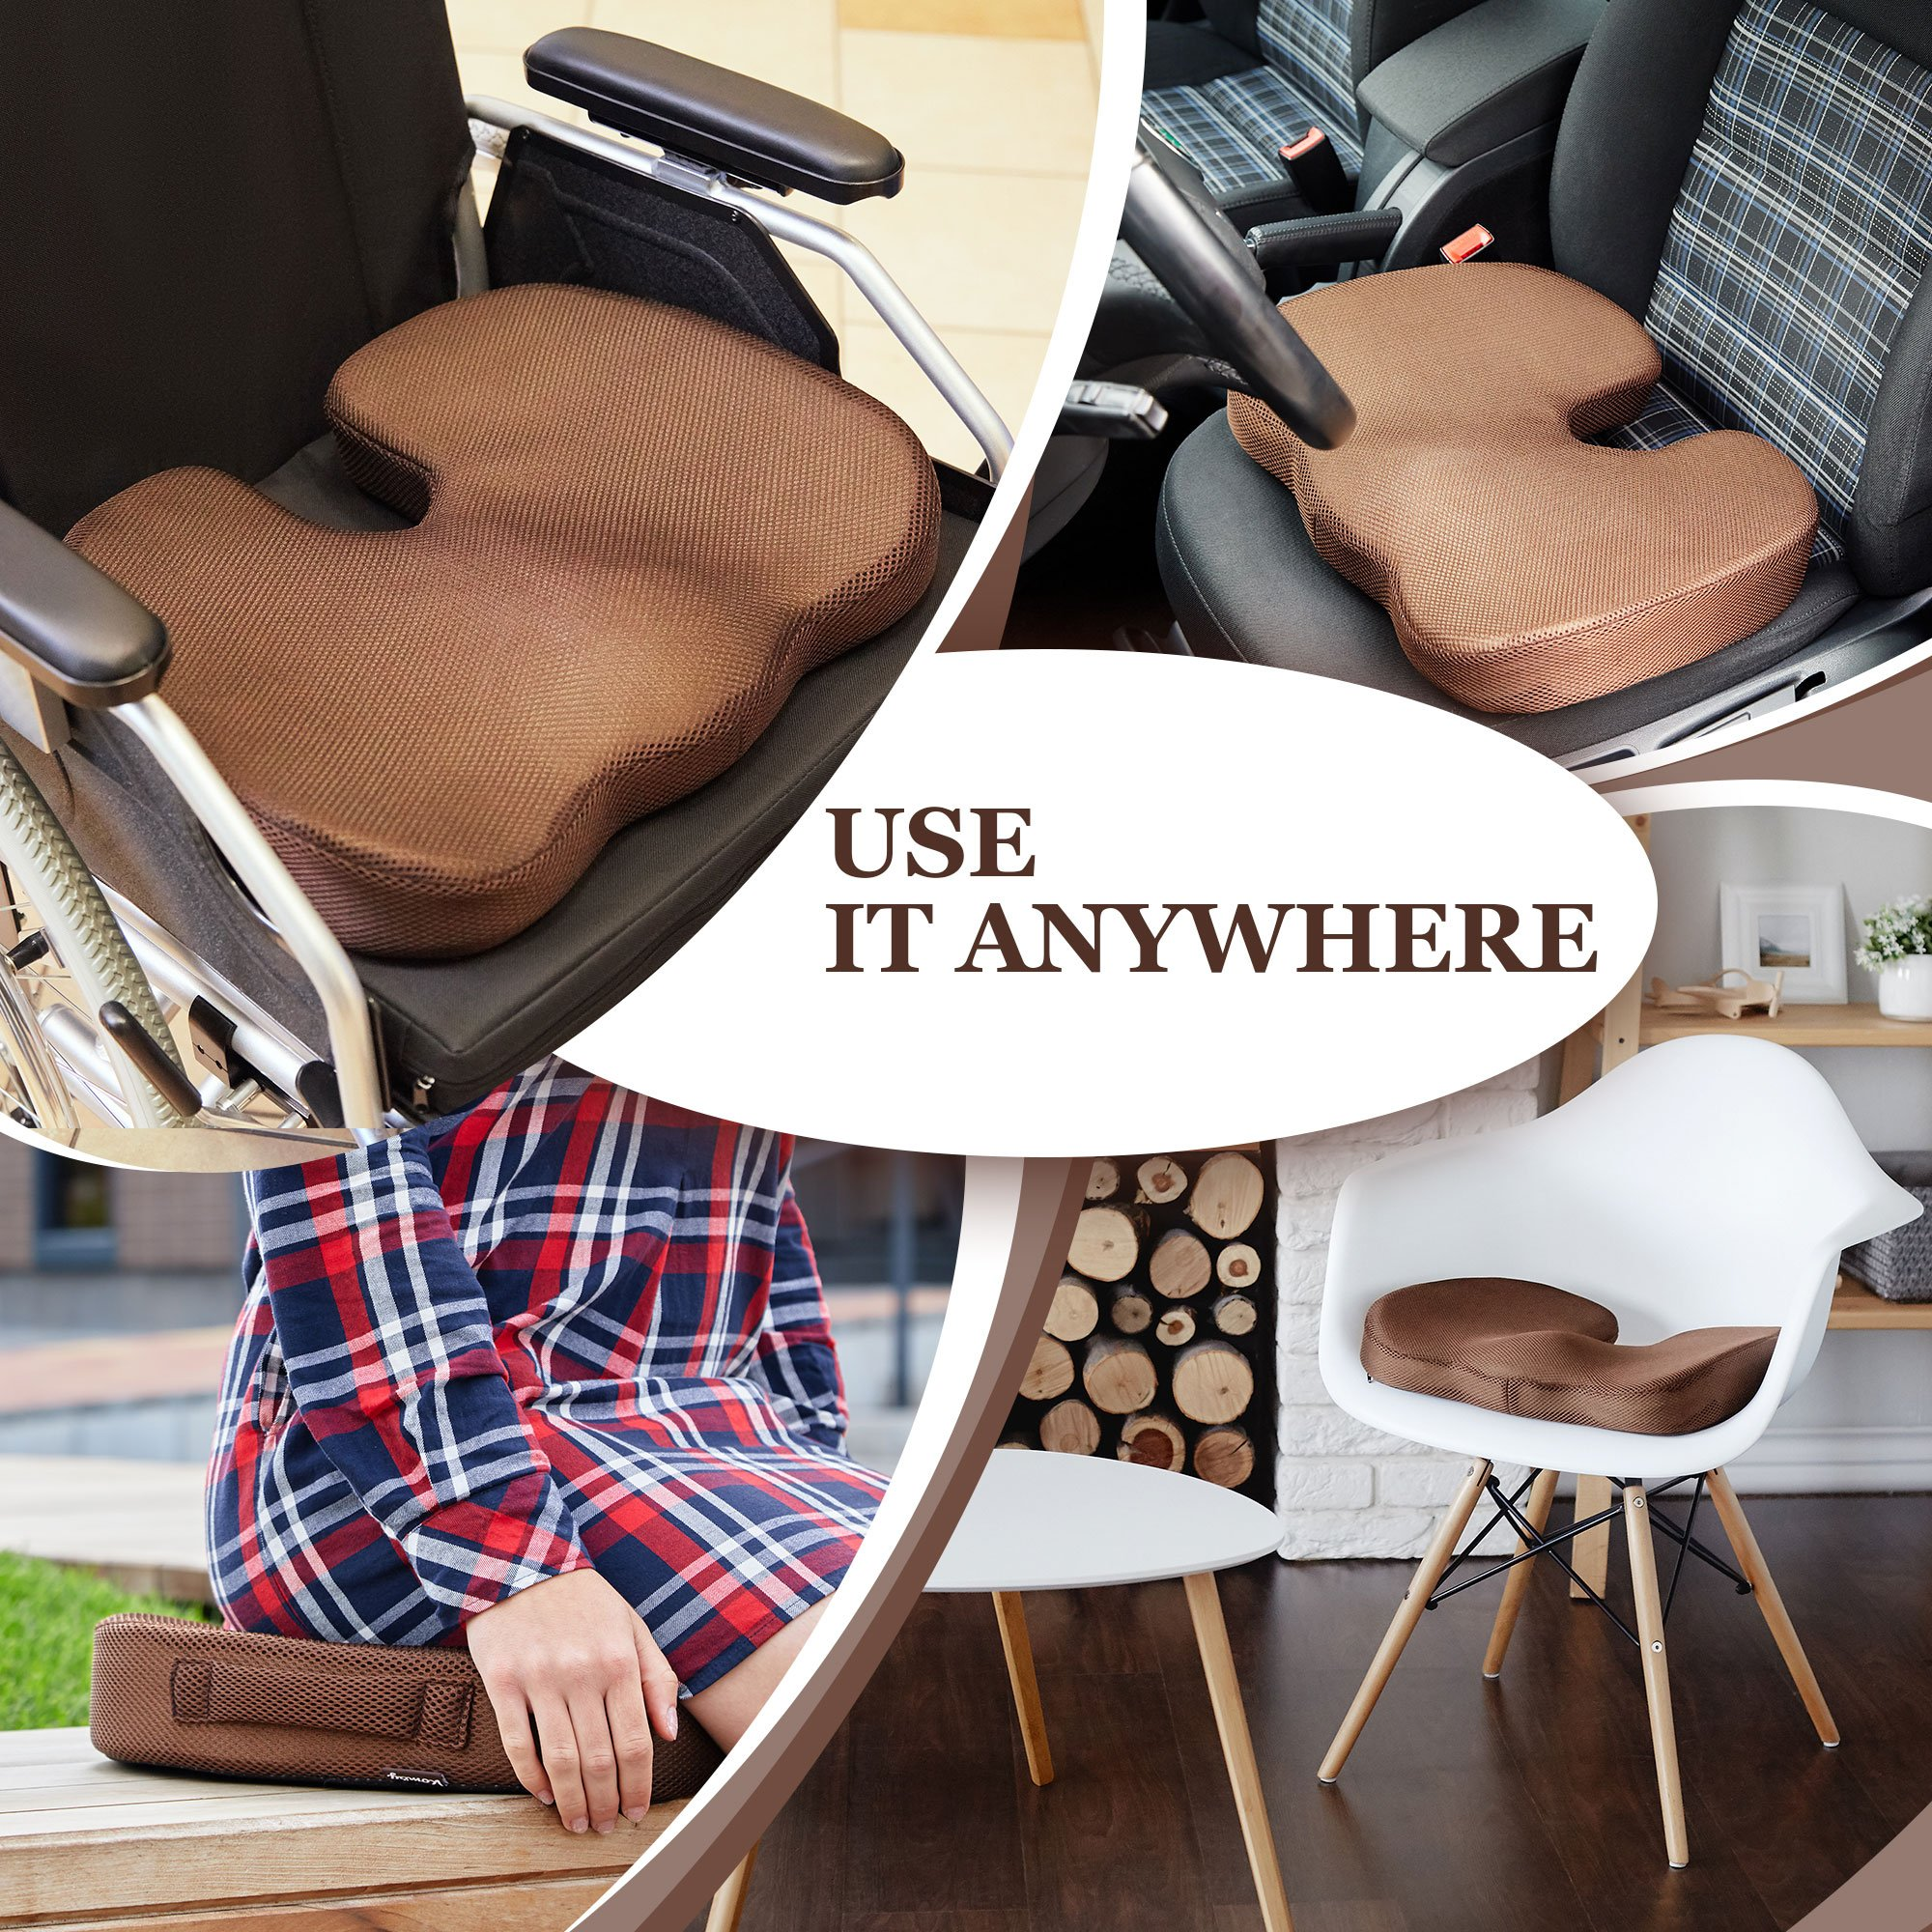 Womby Orthopedic Memory Foam Seat Cushion (U-Type) by Orthopedic Coccyx Pillow for Office Chair, Car, Plane – Best Design to Relieve Back, Sciatica and Tailbone Pain – Non-Slip, Washable Cover by Womby (Image #7)